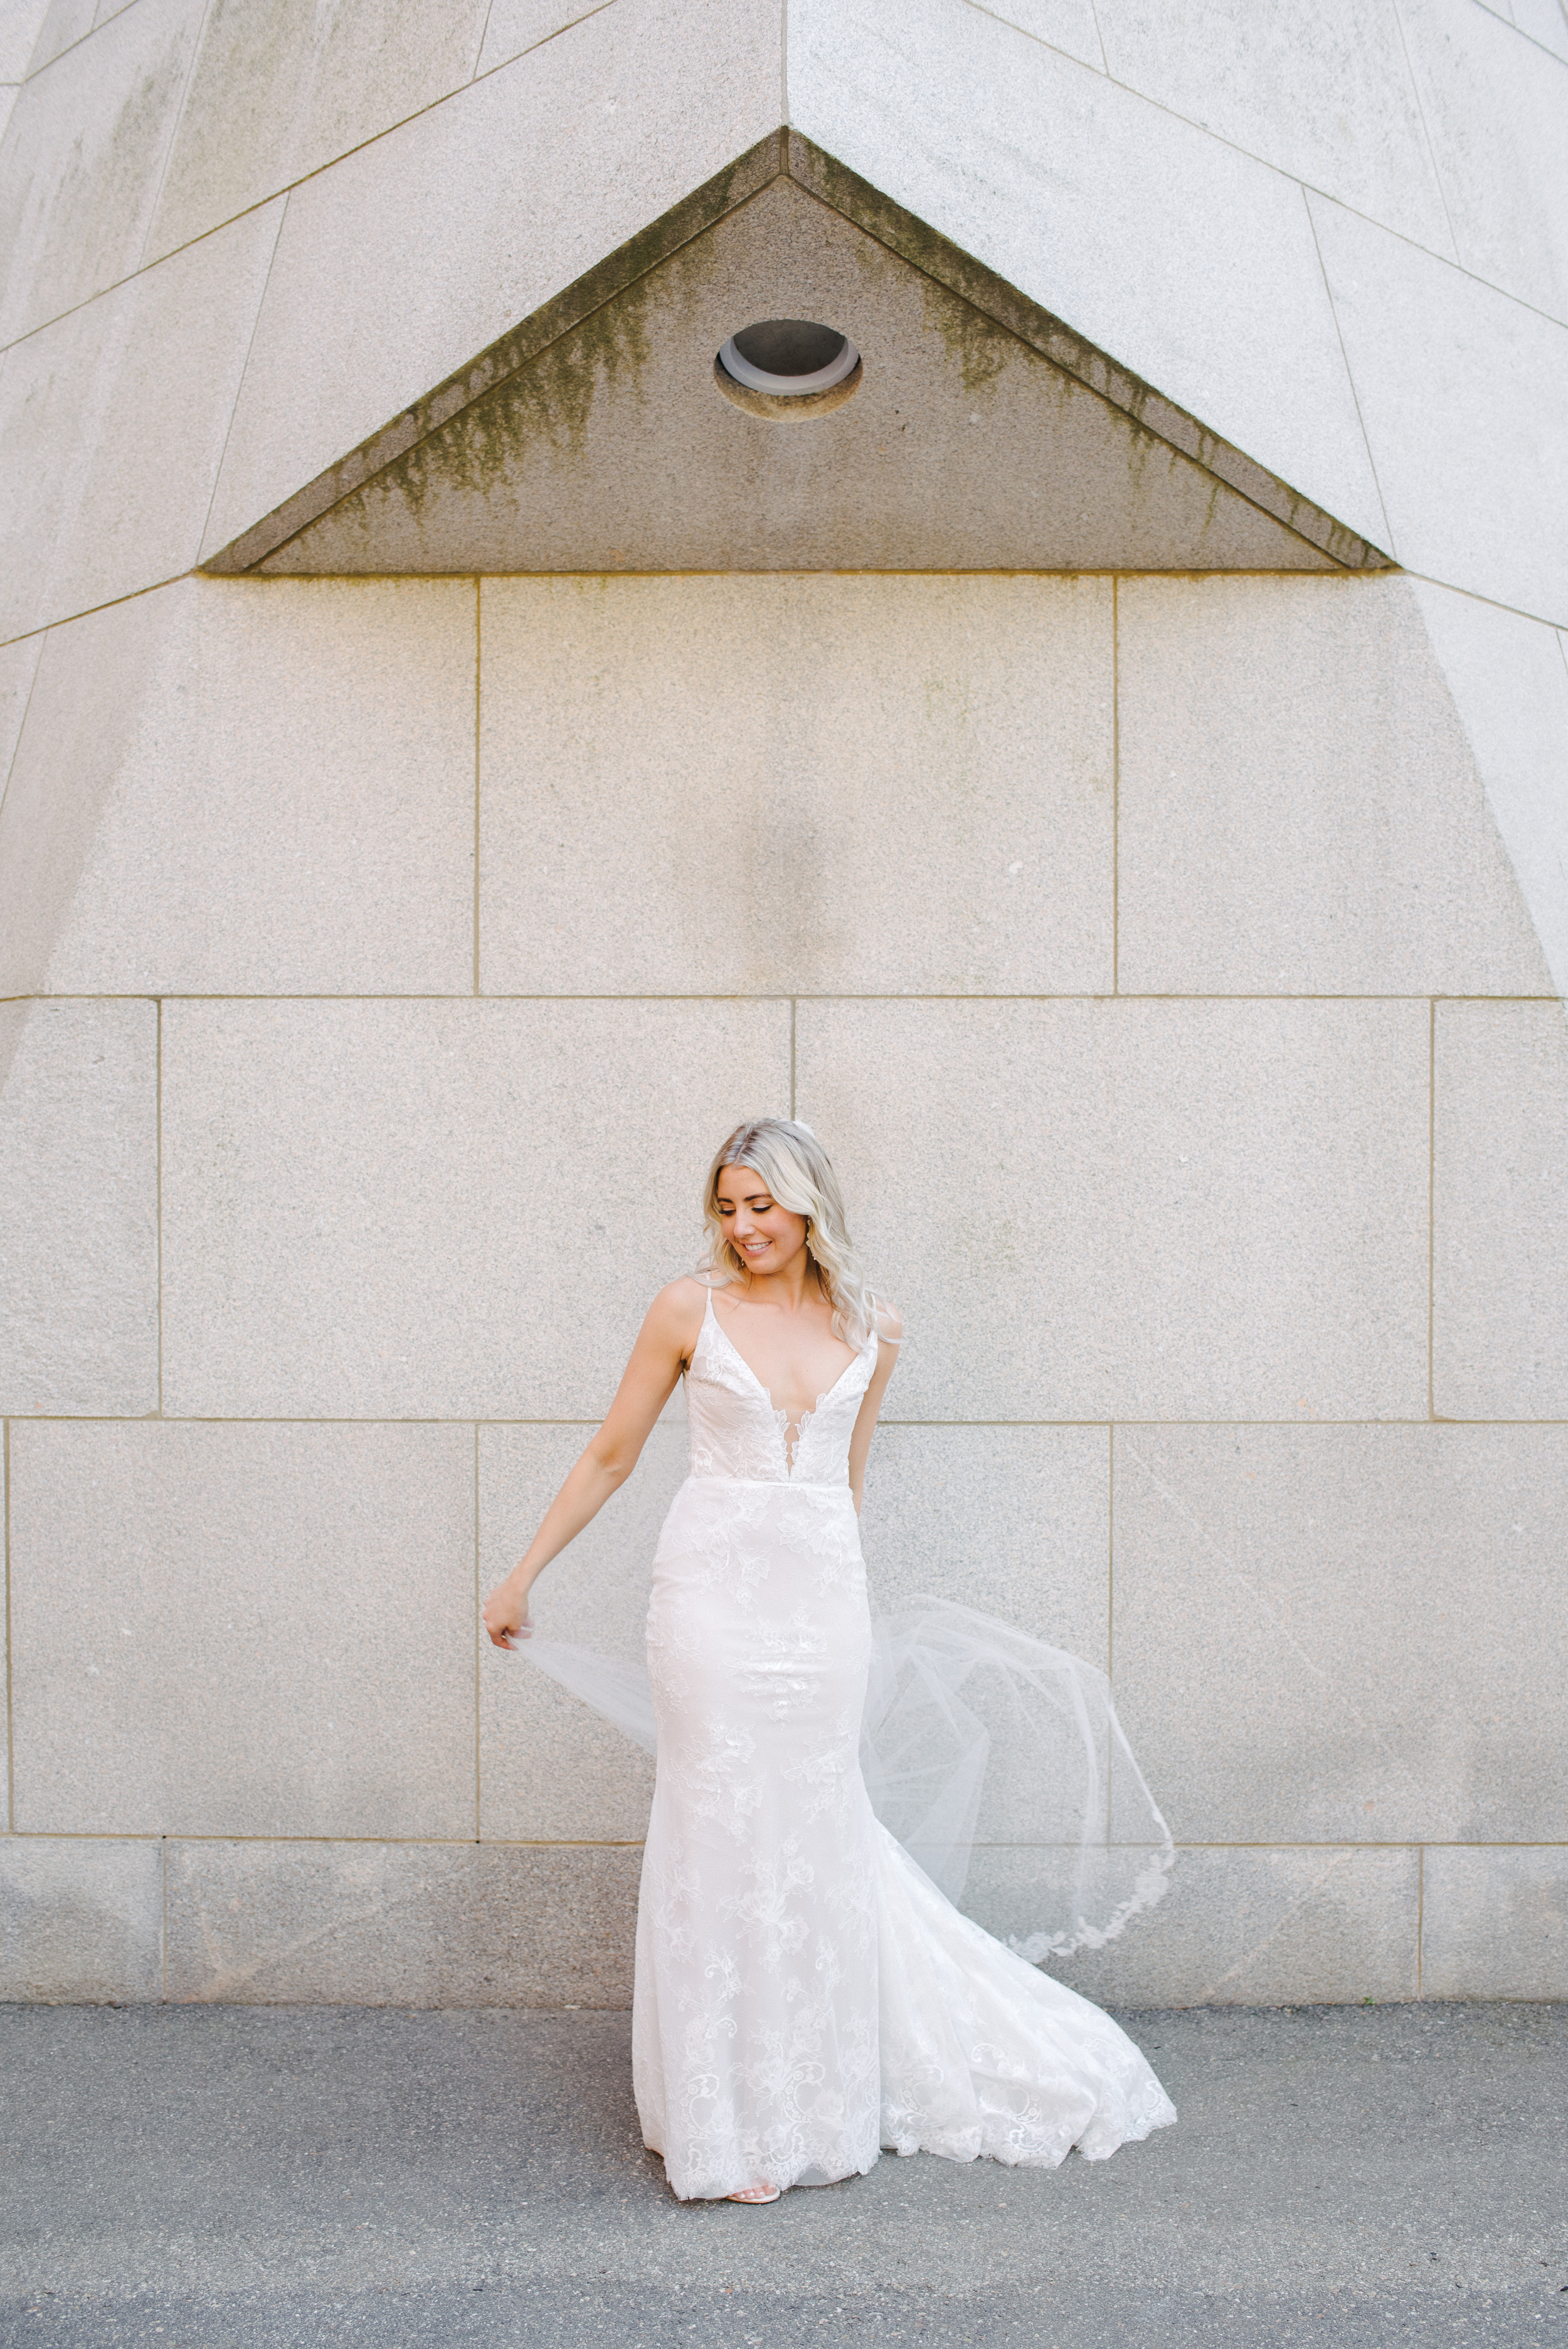 modern and stylish vogue and bride wedding photographer and bride holding veil